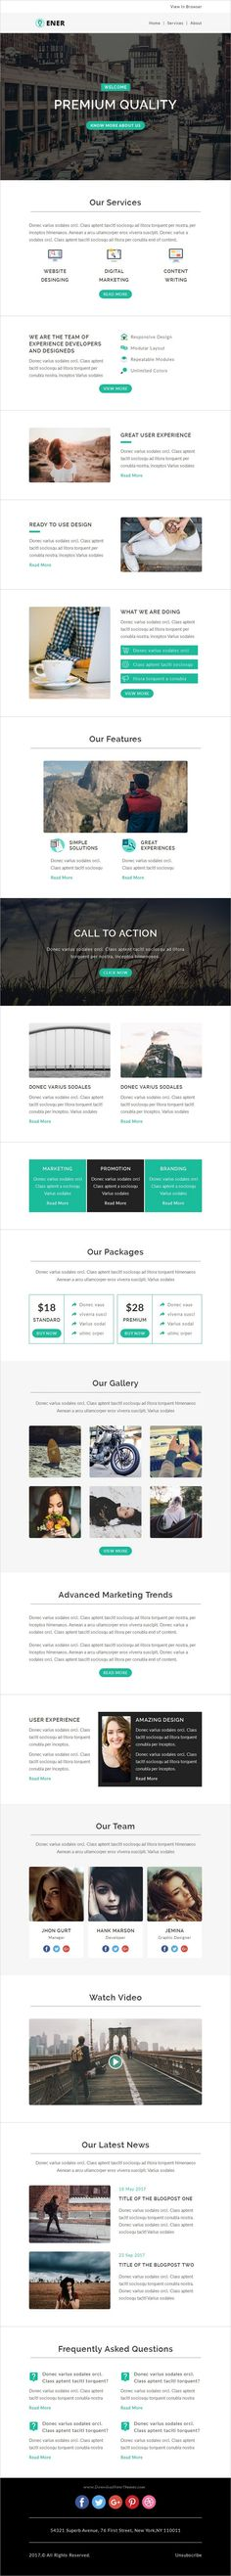 Breaker for Construction Company - Email Template PSD e - email newsletter template